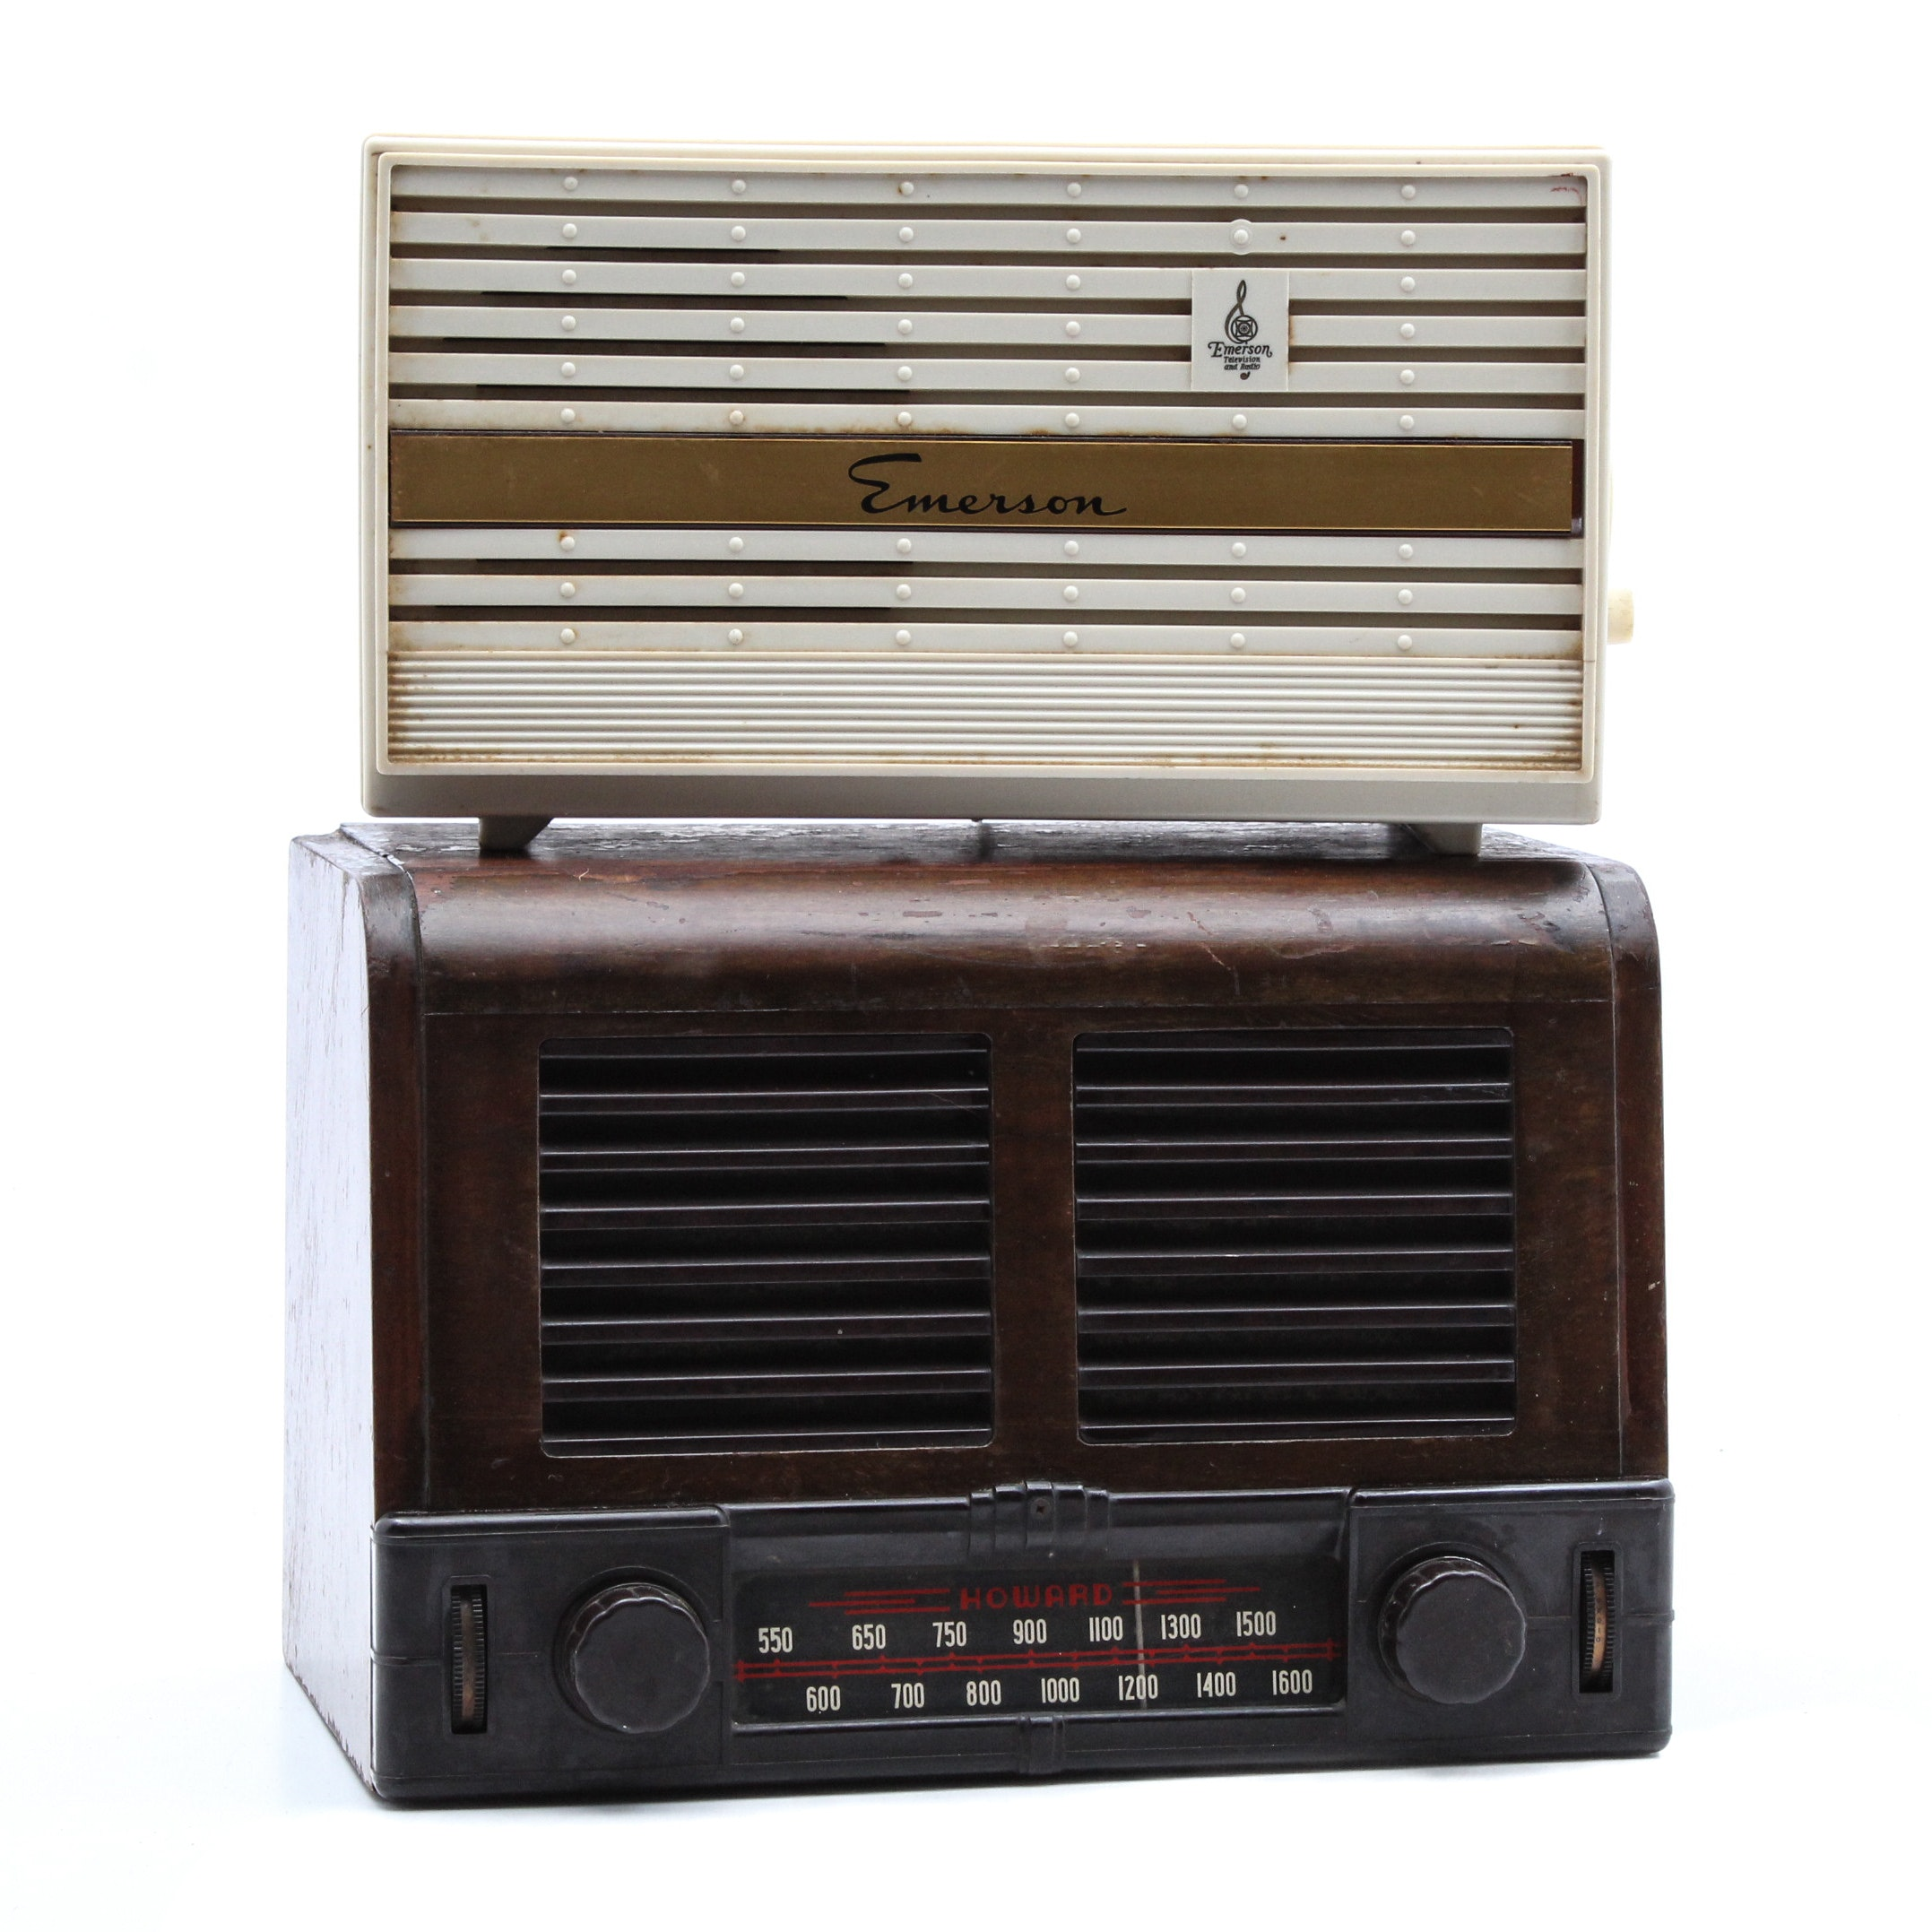 Art Deco Howard and Vintage Emerson Radios